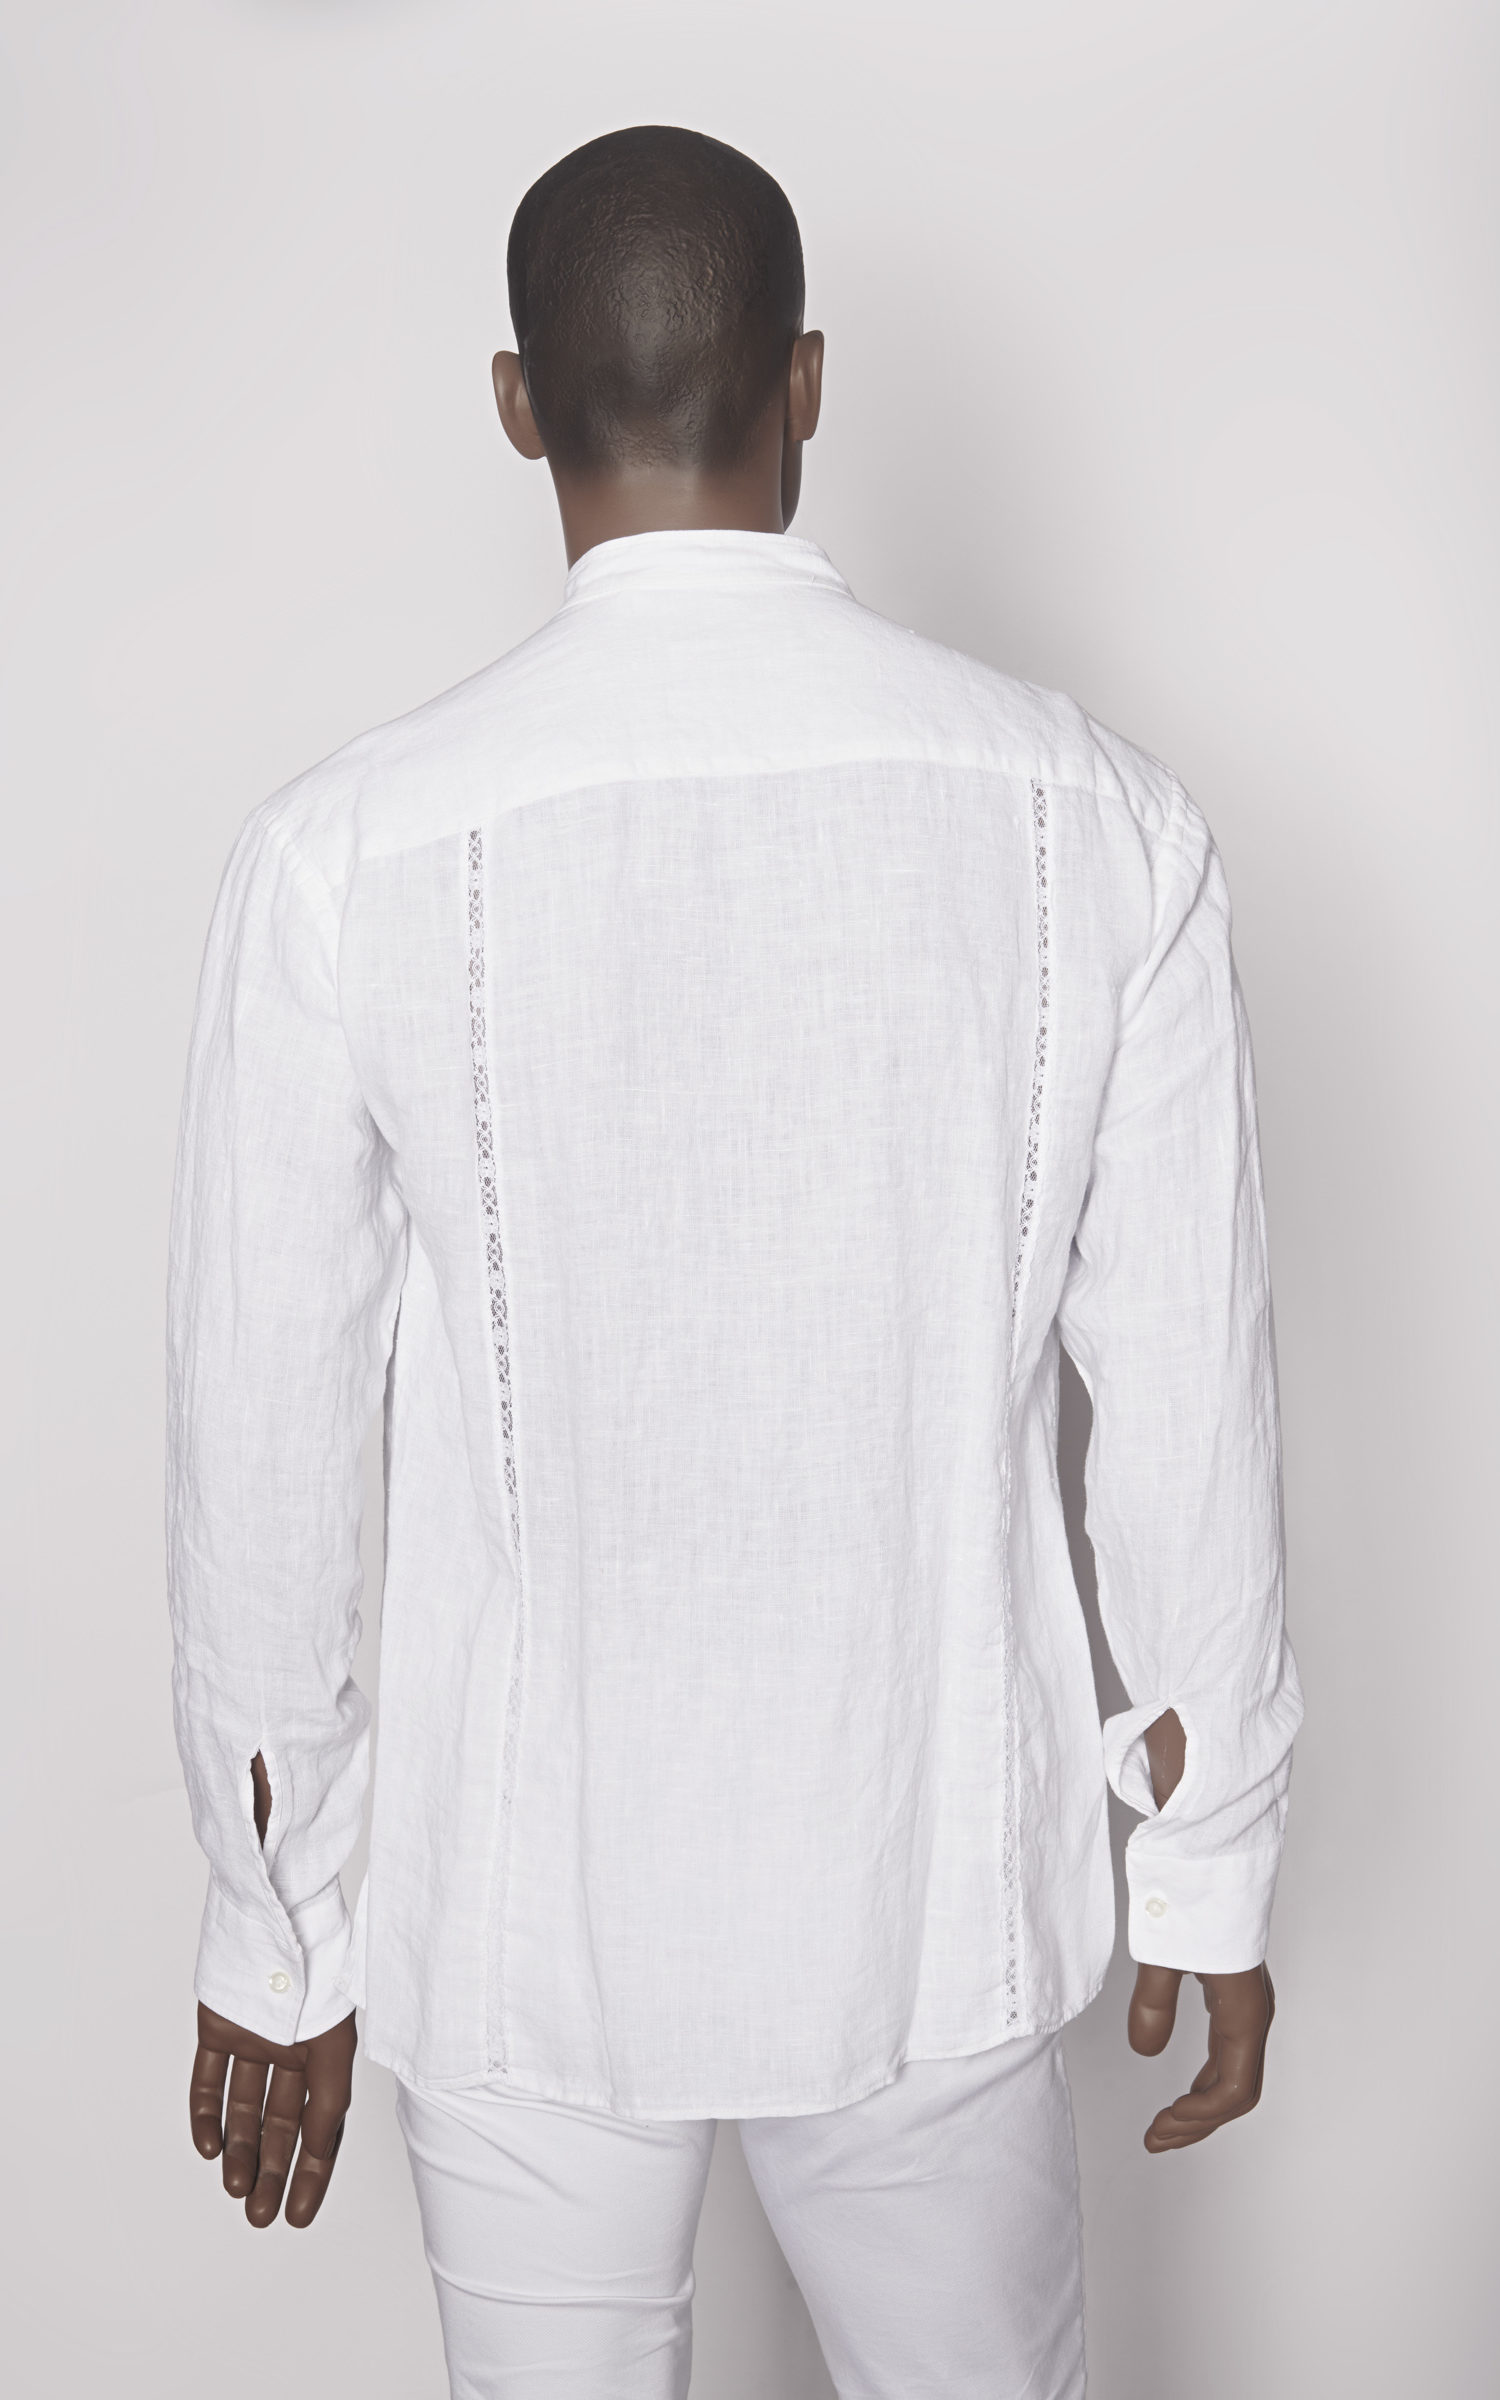 Common used as ceremony shirt